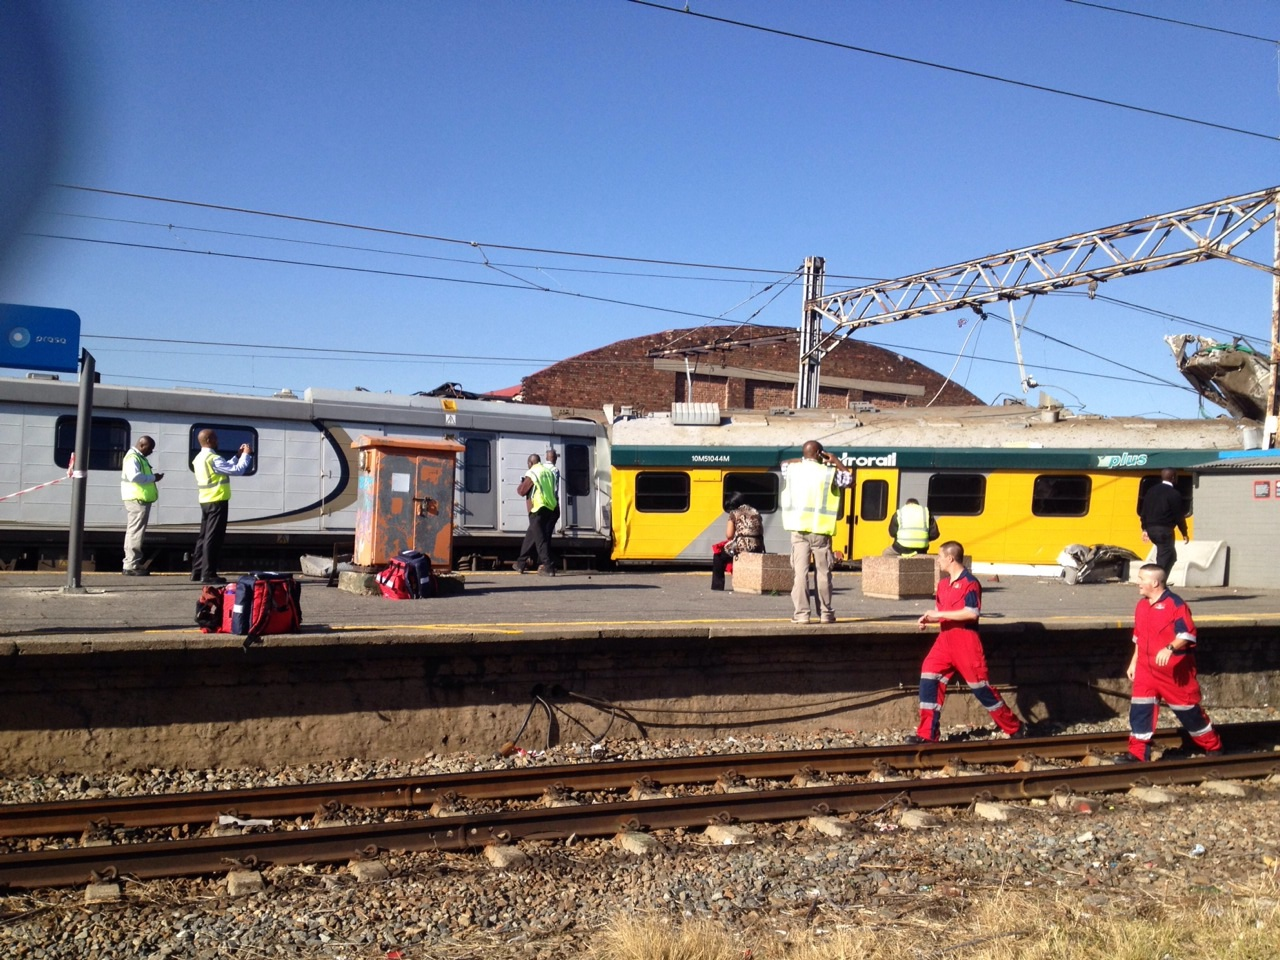 Horror train collision leaves one dead and about 80 injured at Denver station, JHB